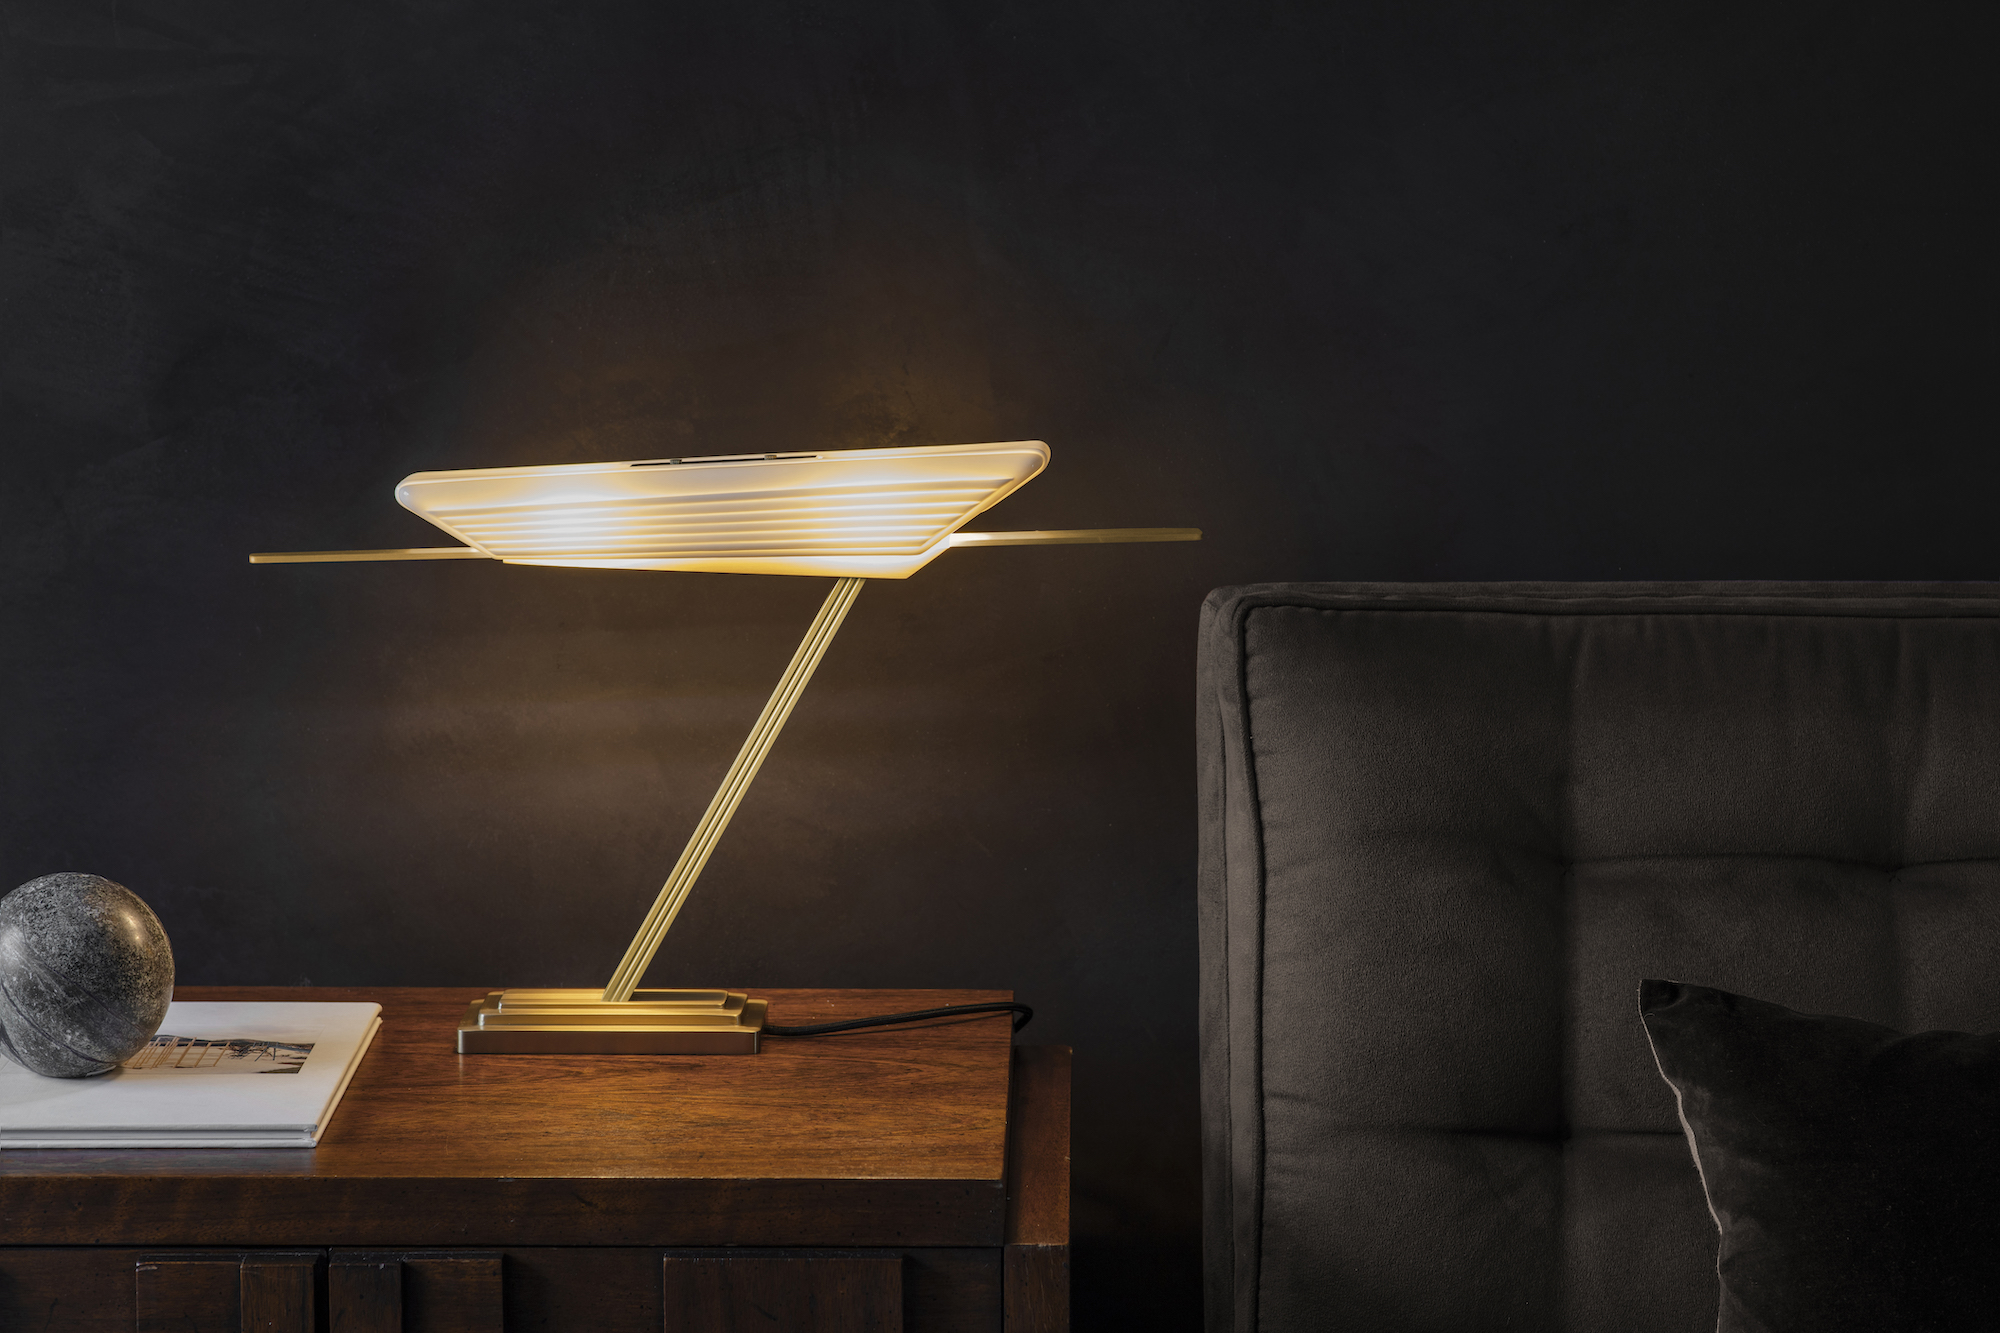 Glaive Table light by Bert and Frank